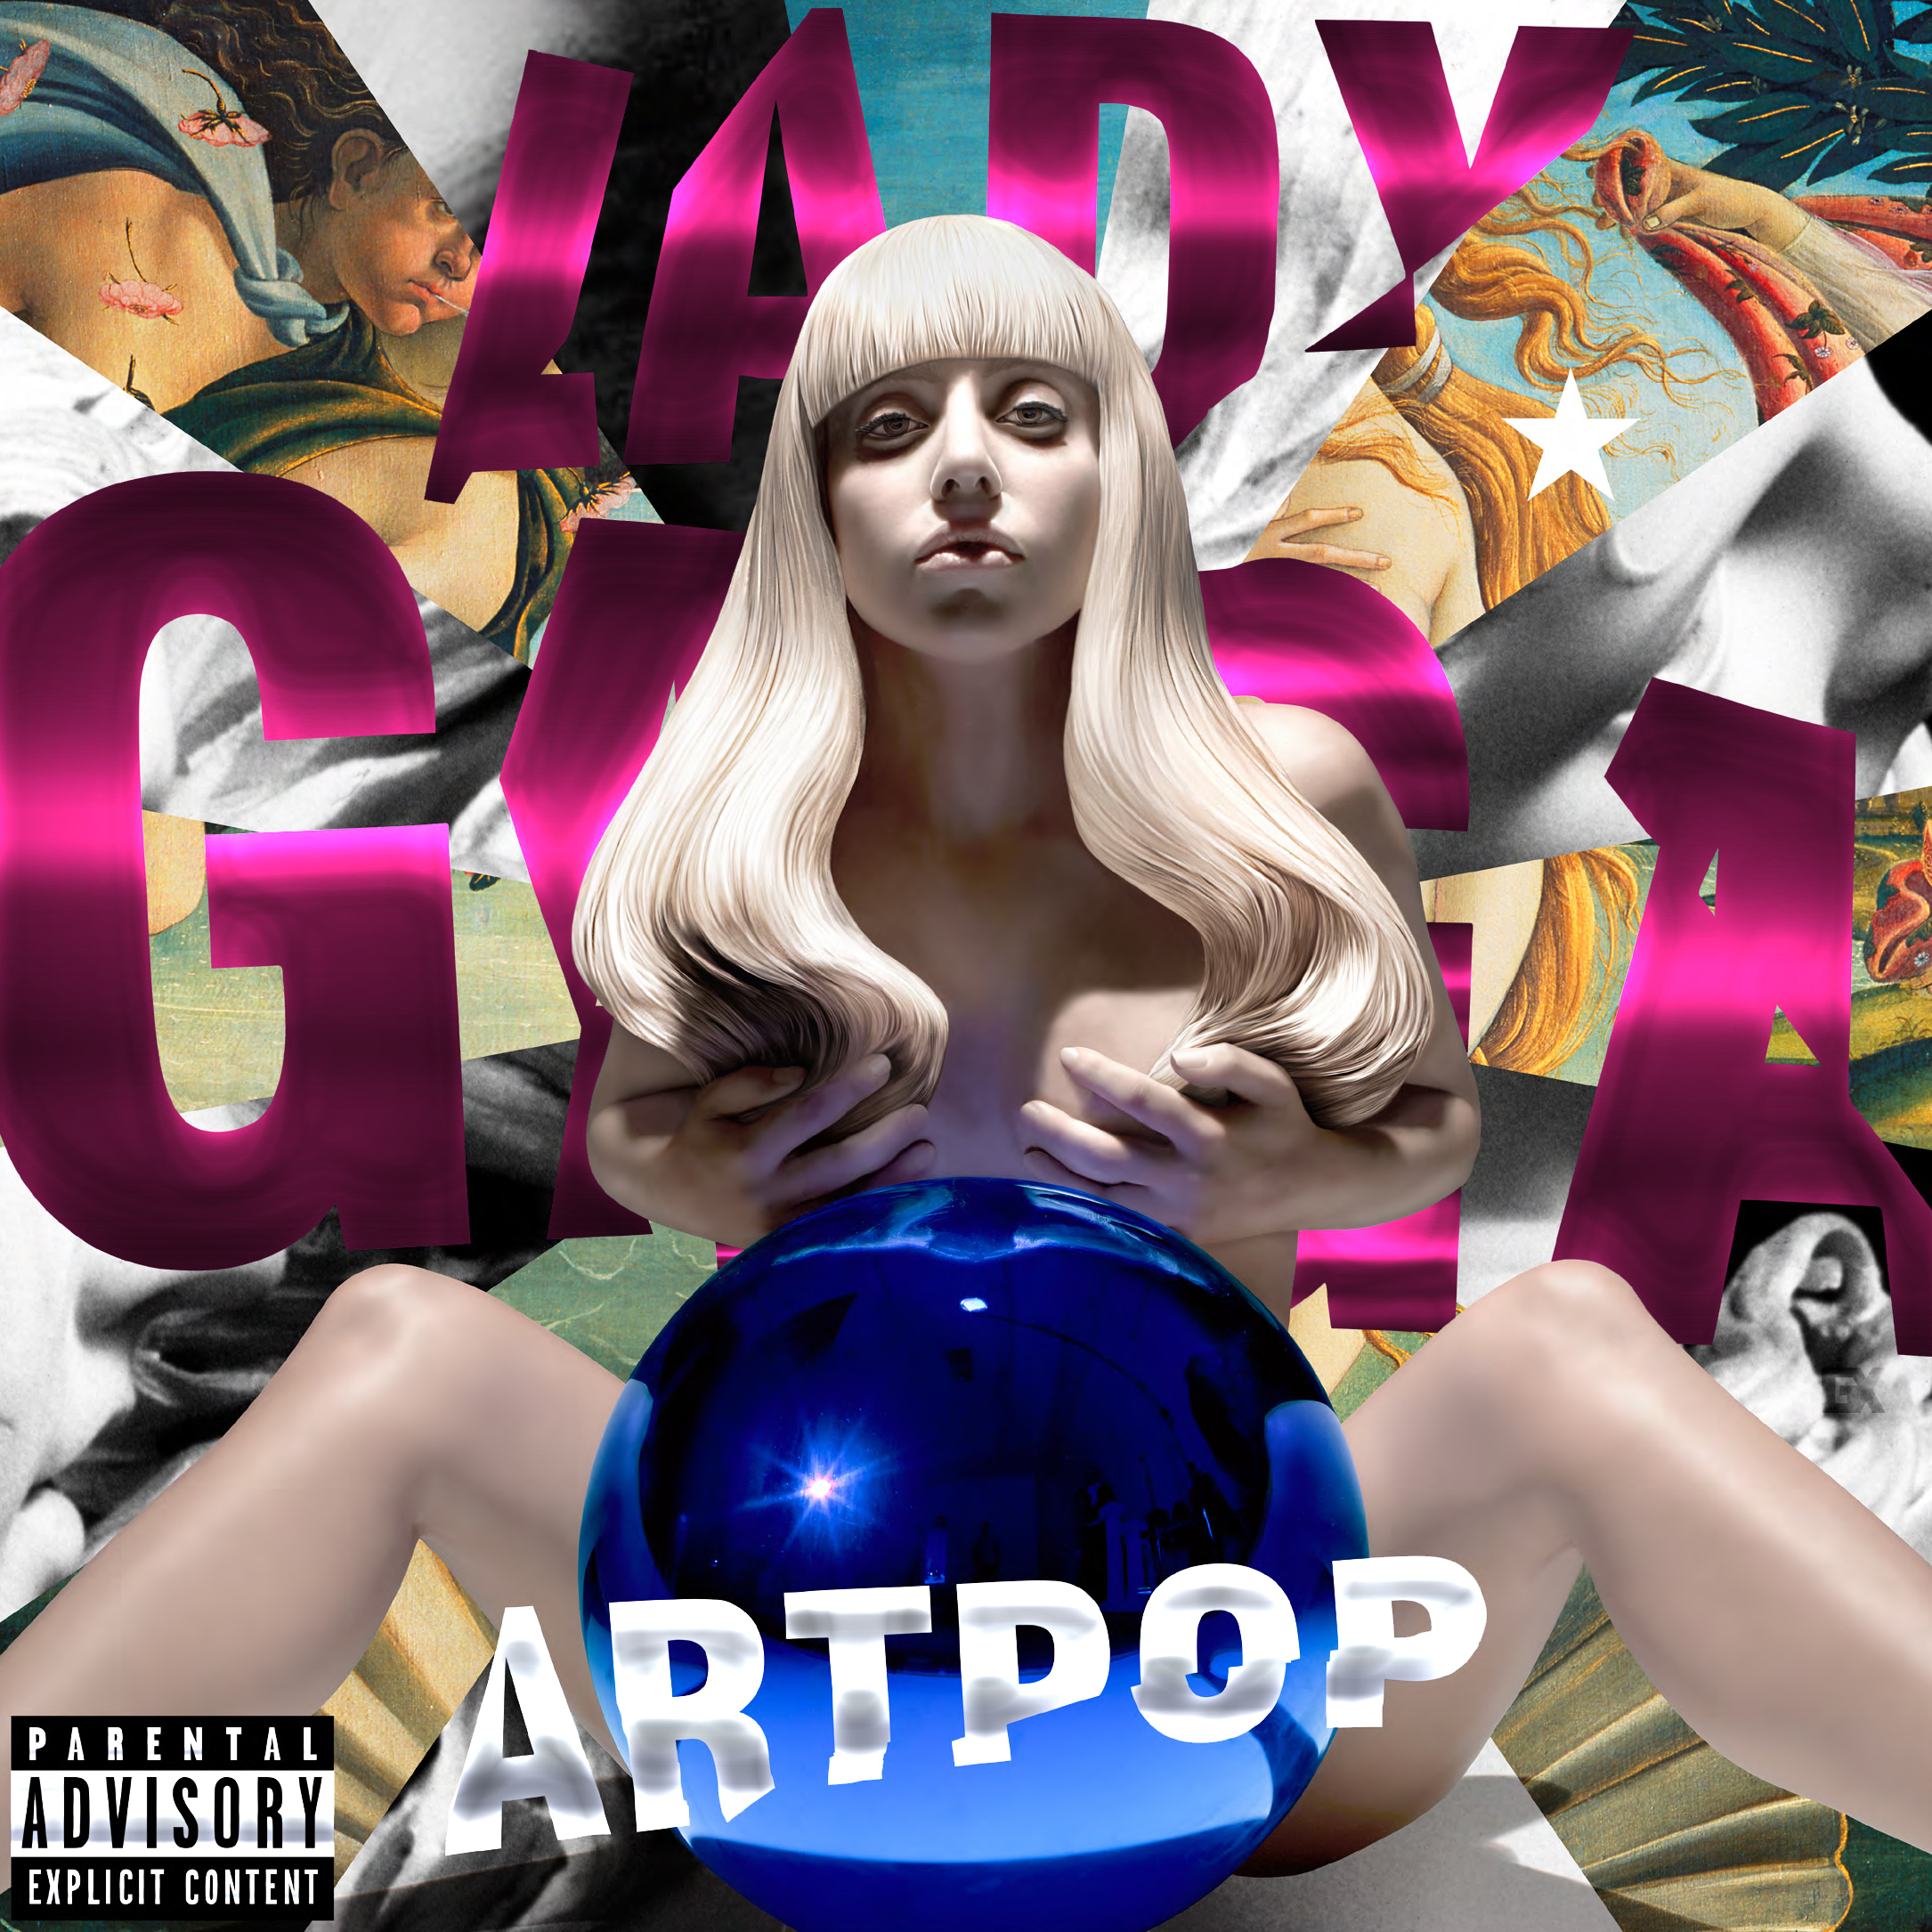 lady_gaga_artpop_cover__2170px__by_gigy1